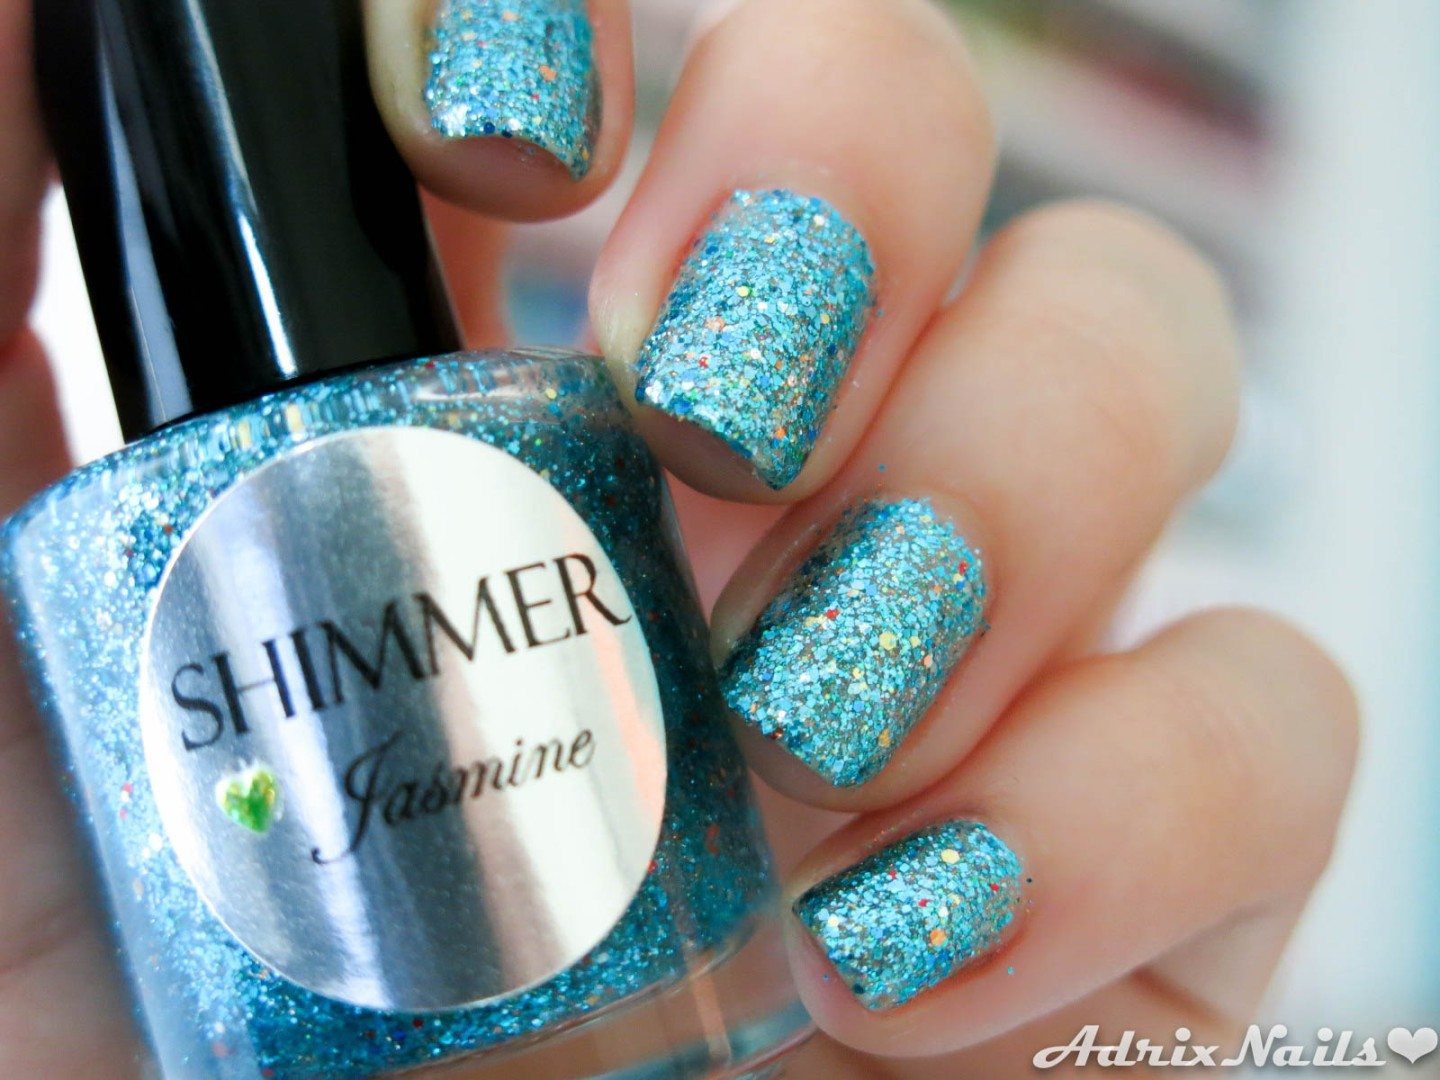 shimmer polish, review, jasmine, glitter, reseña de esmaltes, reseñas de esmaltes, pintauñas, shimmer, uñas naturales, uñas cortas, rojo, striper, i love nail art, reseñas de esmaltes, red eye, uñas fáciles, estoperoles, studs, swatches, glitter, diy nails, uñas paso a paso, esmaltes, uñas, swatches, nails, nail art, nail polish, colores, review, adrix nails, blog mexicano dedicado al nail art, blogueras mexicanas, mexican bloggers, blogs de méxico, nailpolishlove